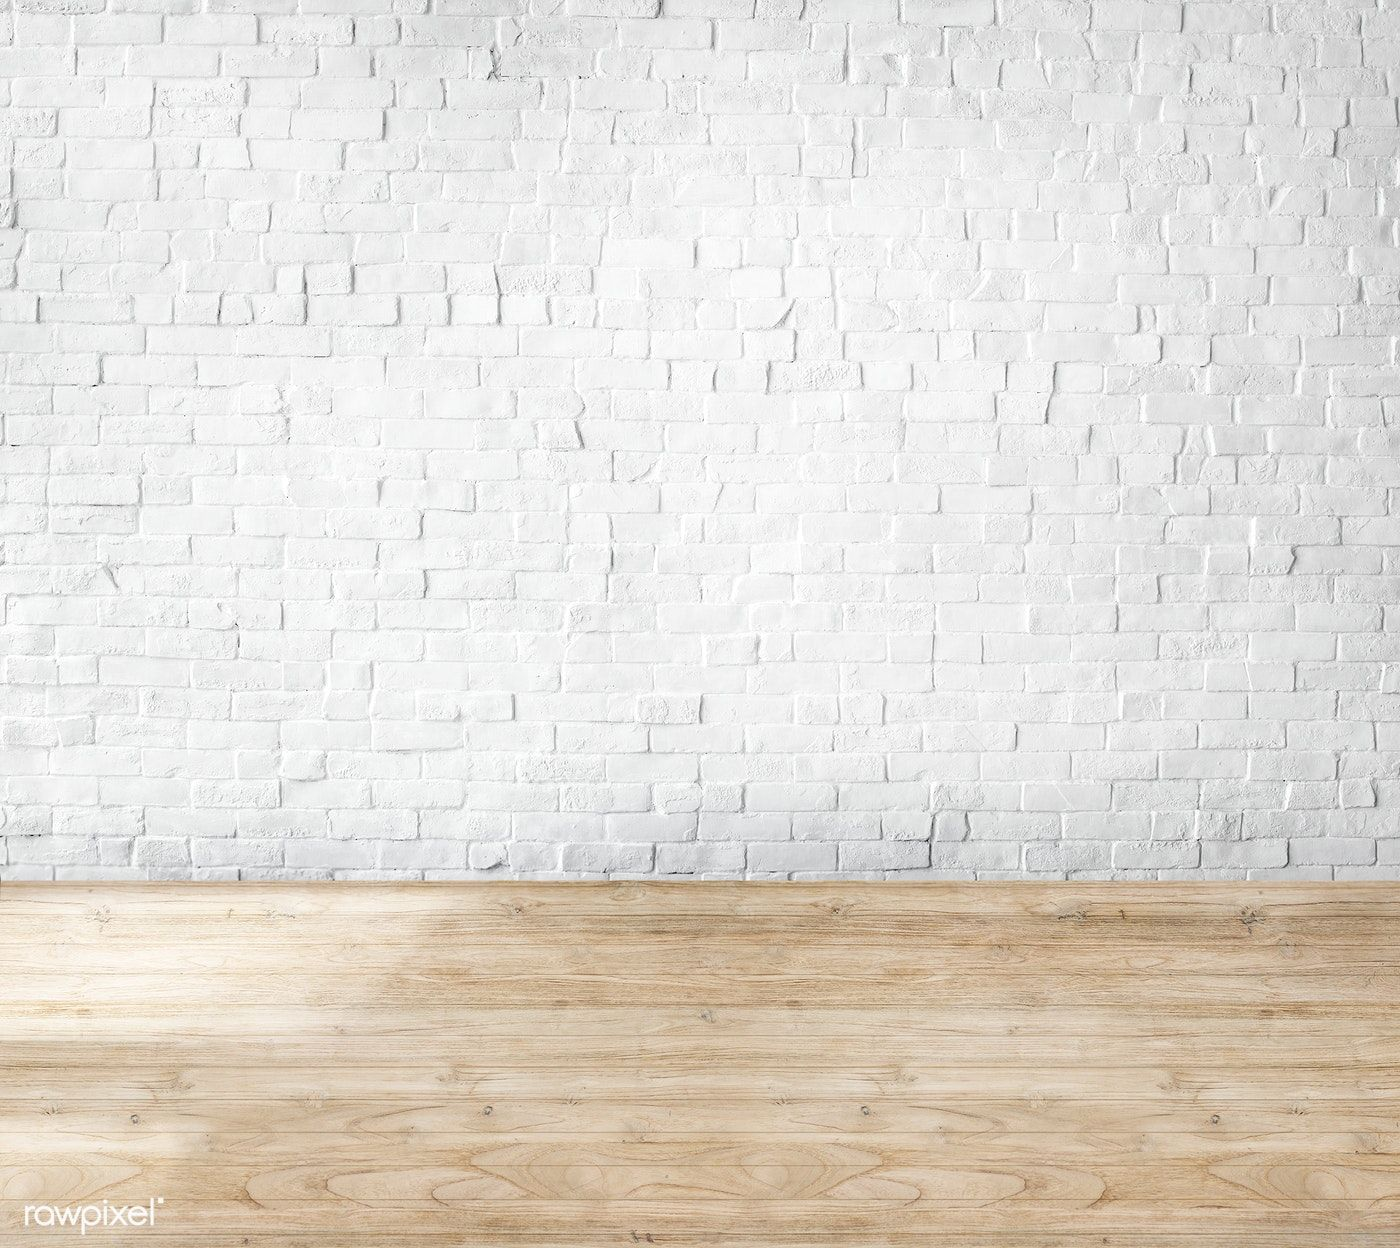 Download Premium Image Of Room Made Of Brick Wall And Wooden Floor 67046